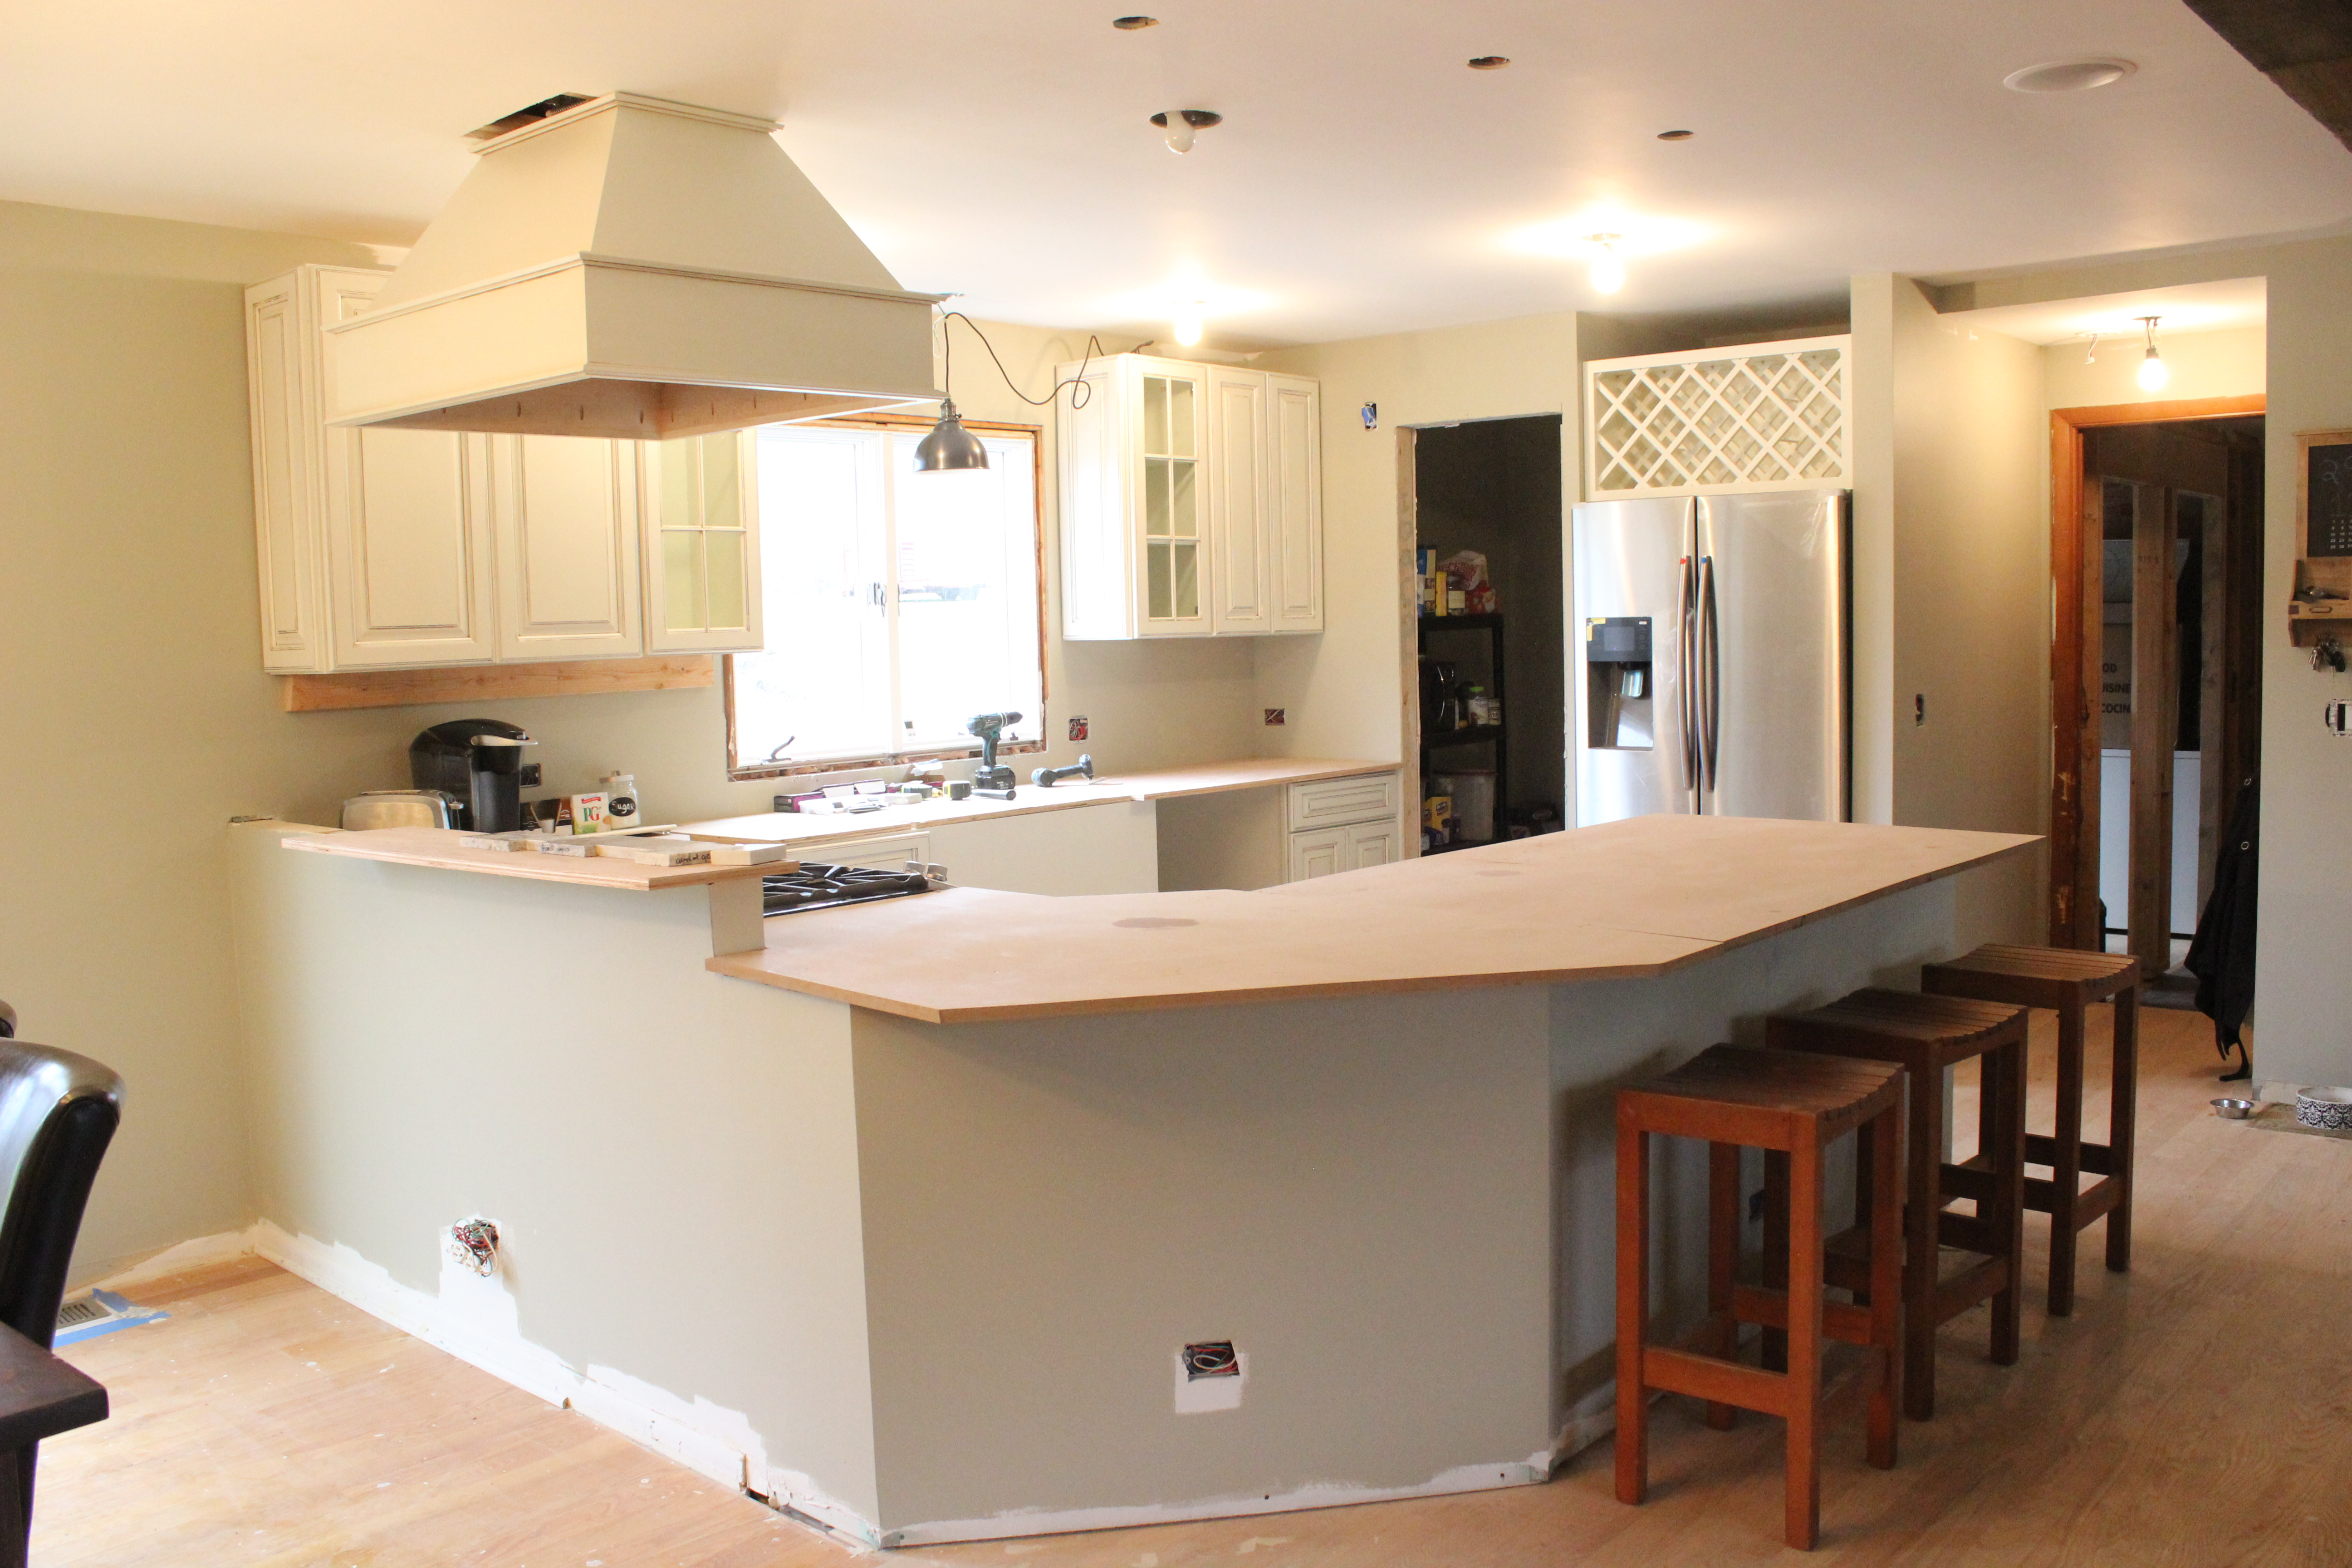 Paint Mdf Countertop : Big Kitchen Renovation Part II: Paint, Cabinets & Hotel Stays 12 ...